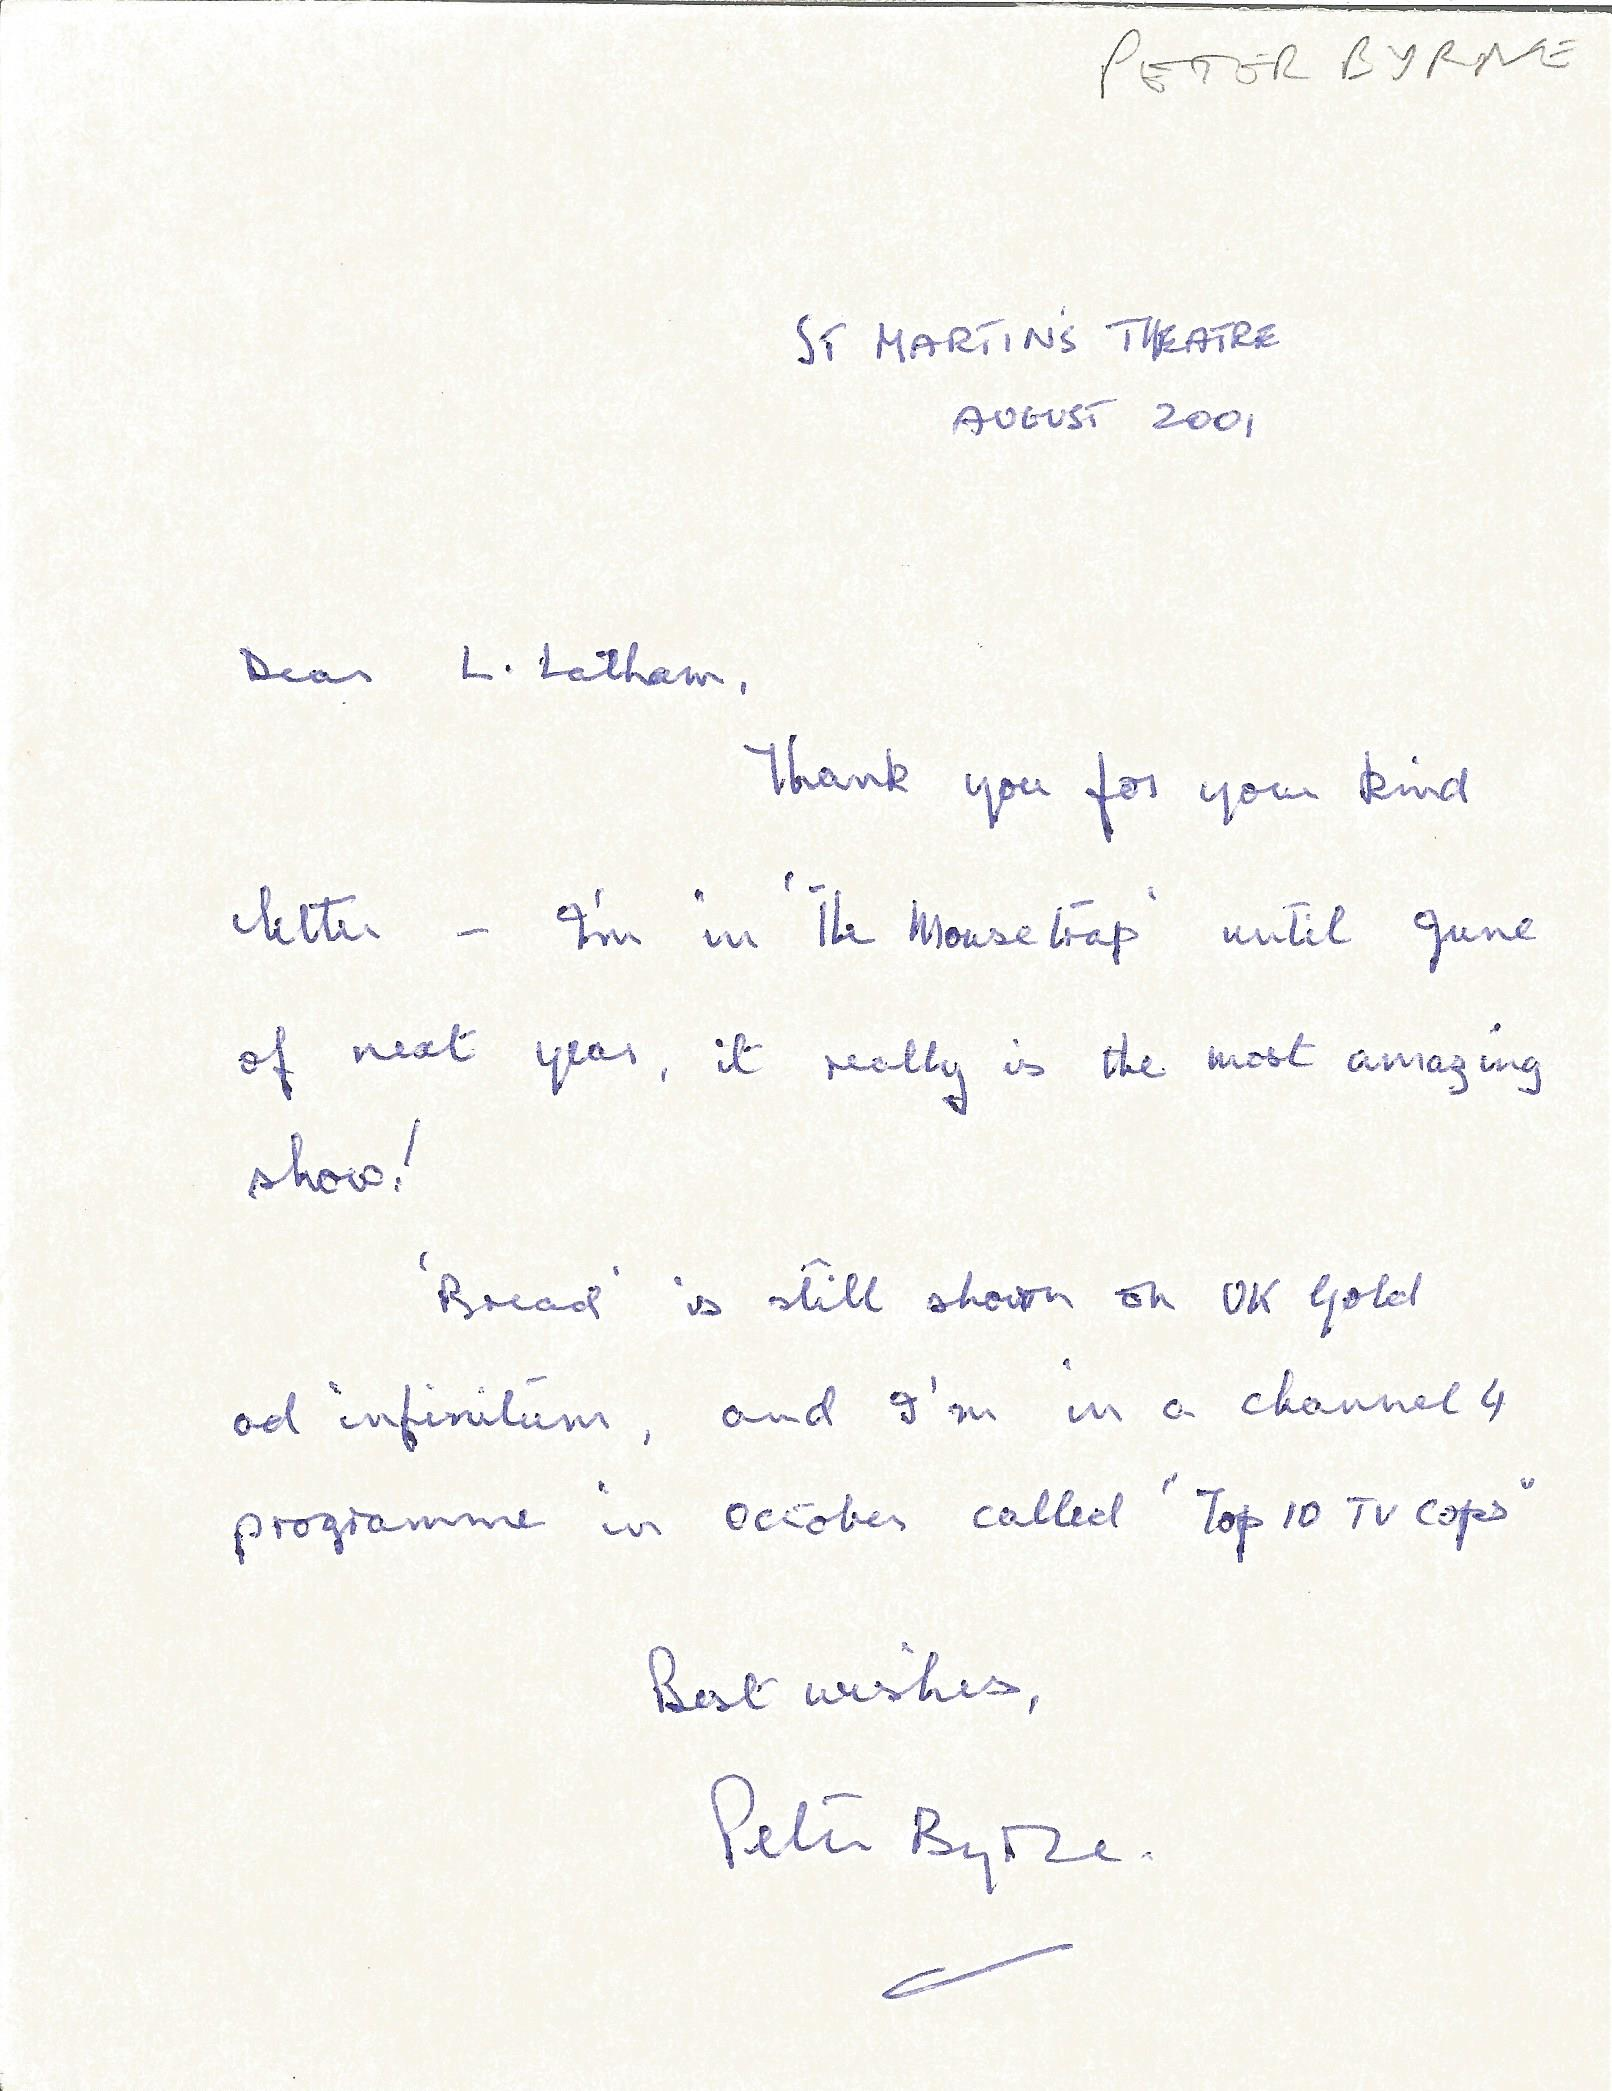 Actor Peter Byrne signed handwritten letter advising his current work commitments. Peter James Byrne